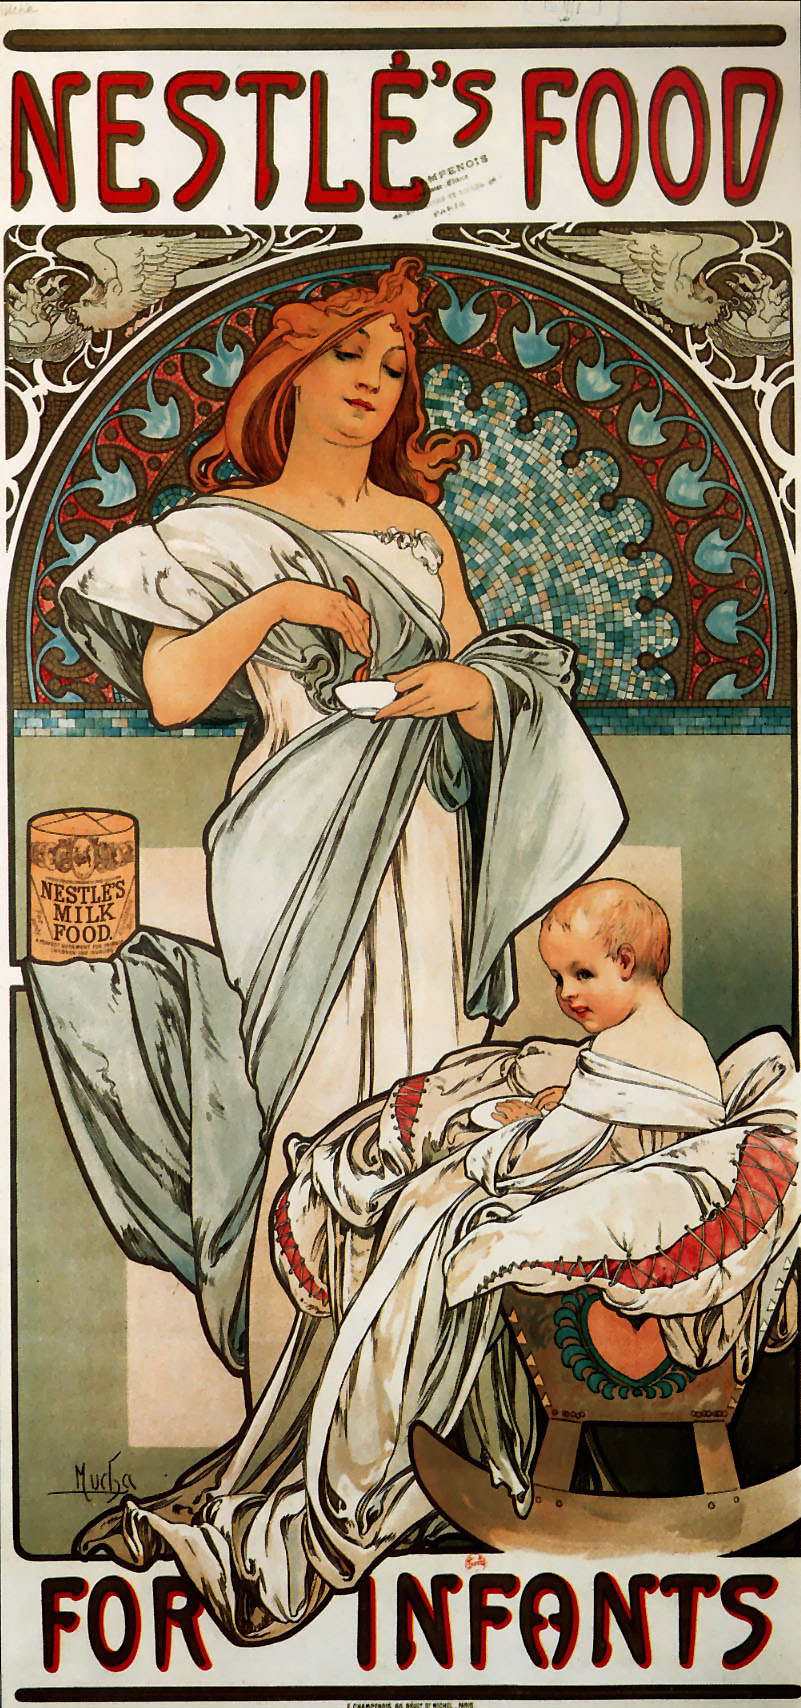 file mucha nestl 39 s food for infants wikimedia commons. Black Bedroom Furniture Sets. Home Design Ideas